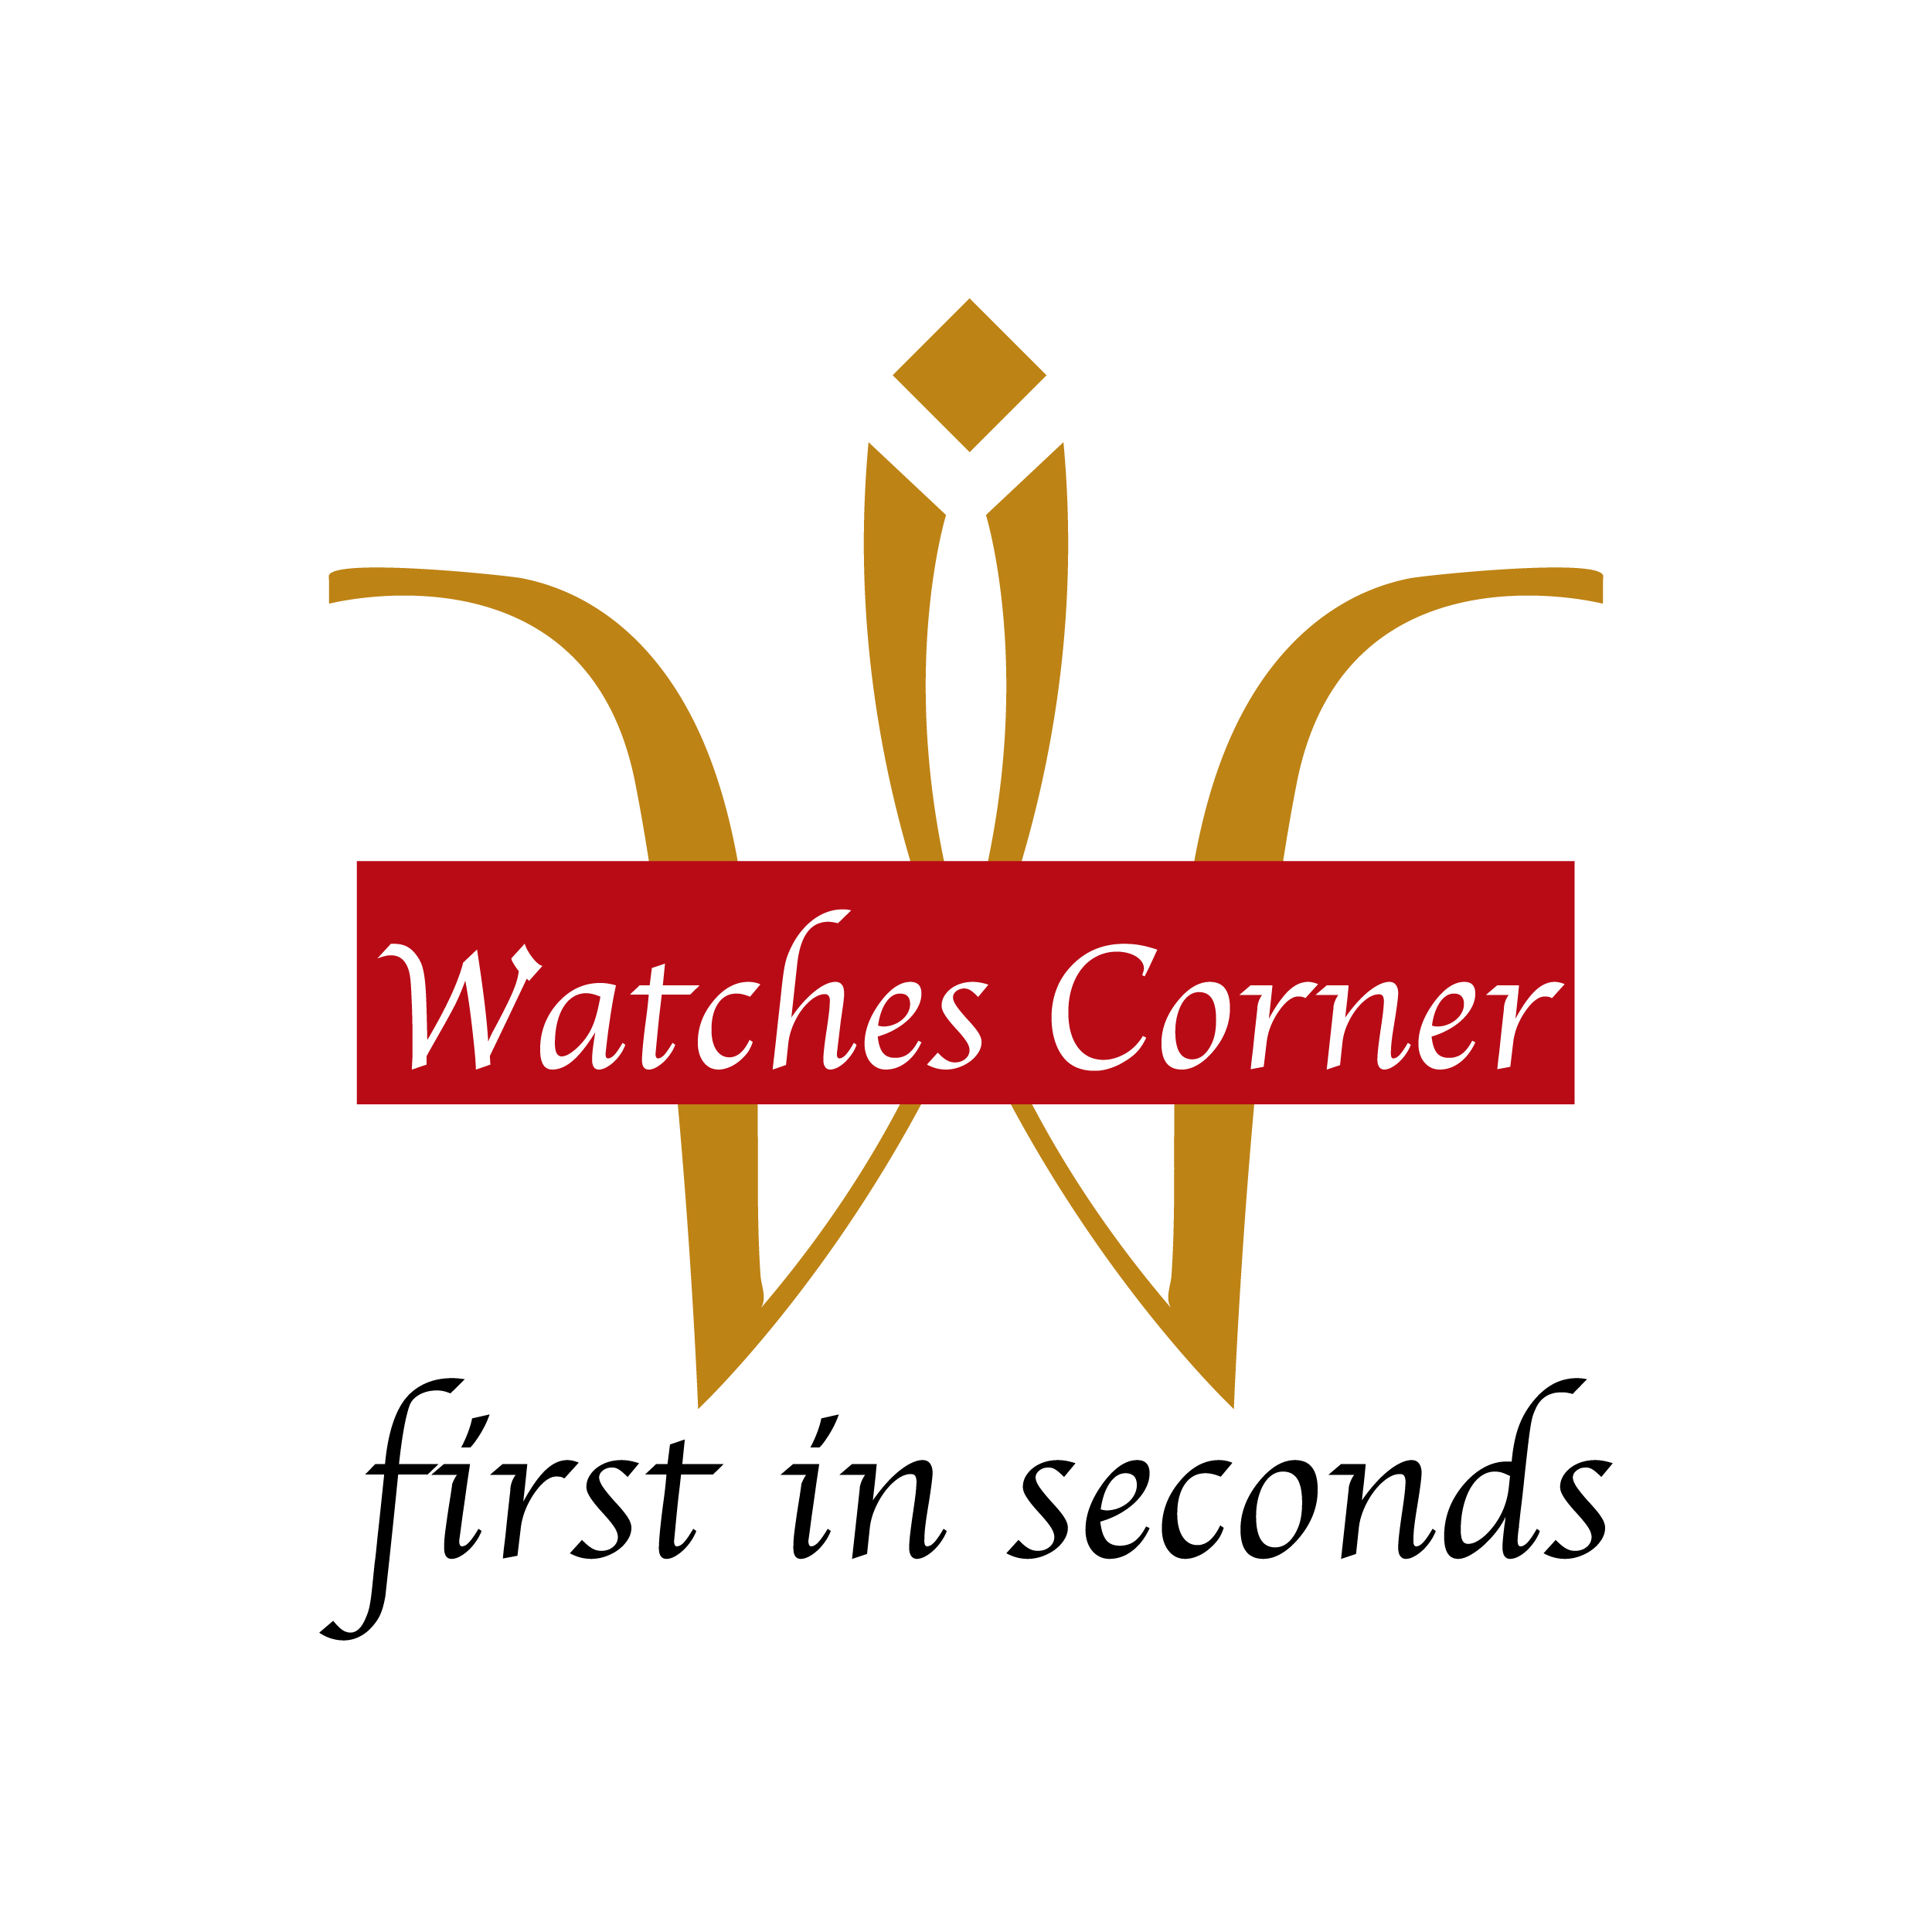 Watches Corner